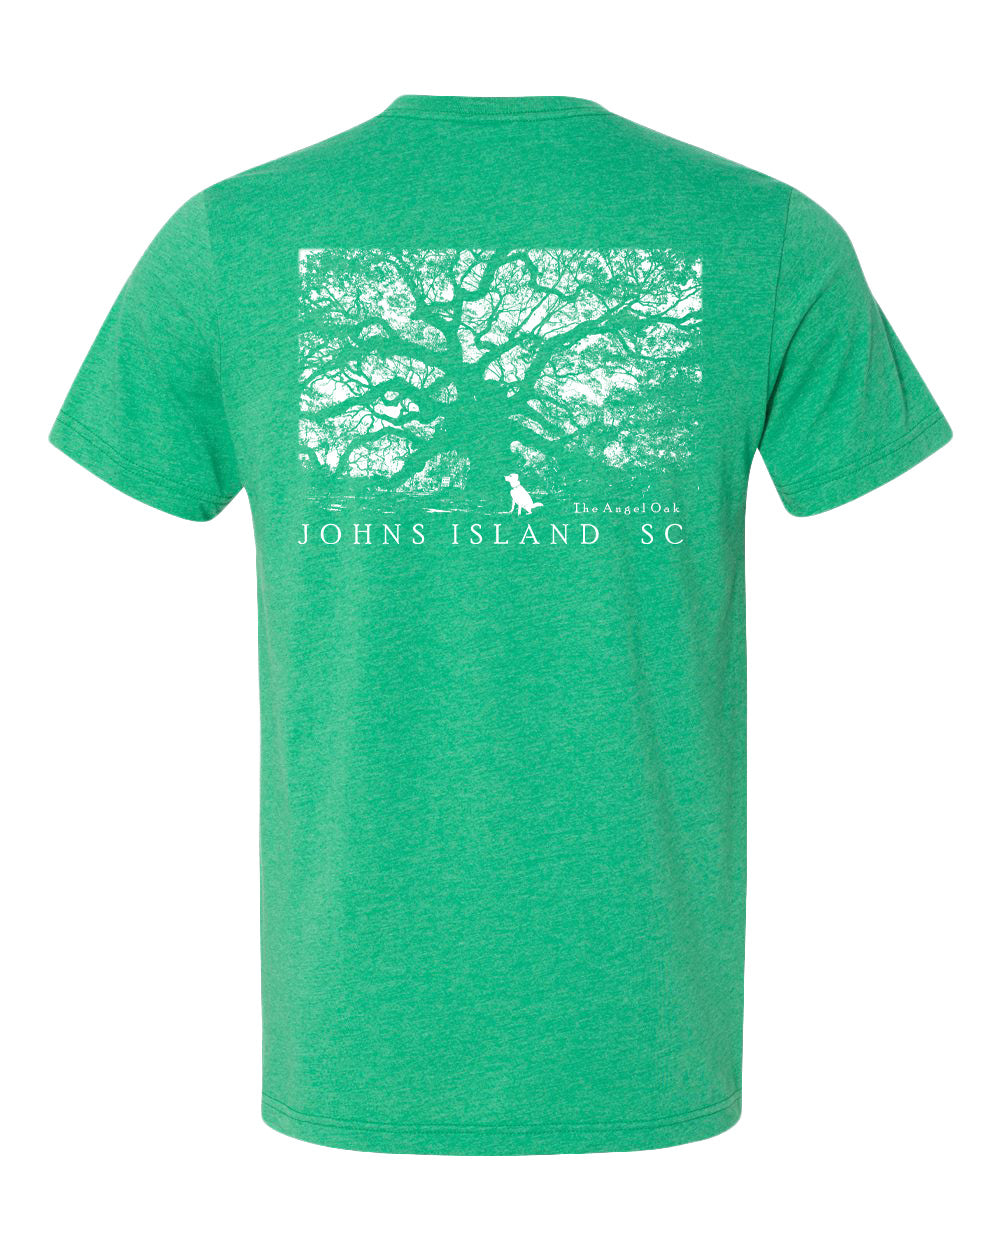 John's Island Short Sleeve T-shirt